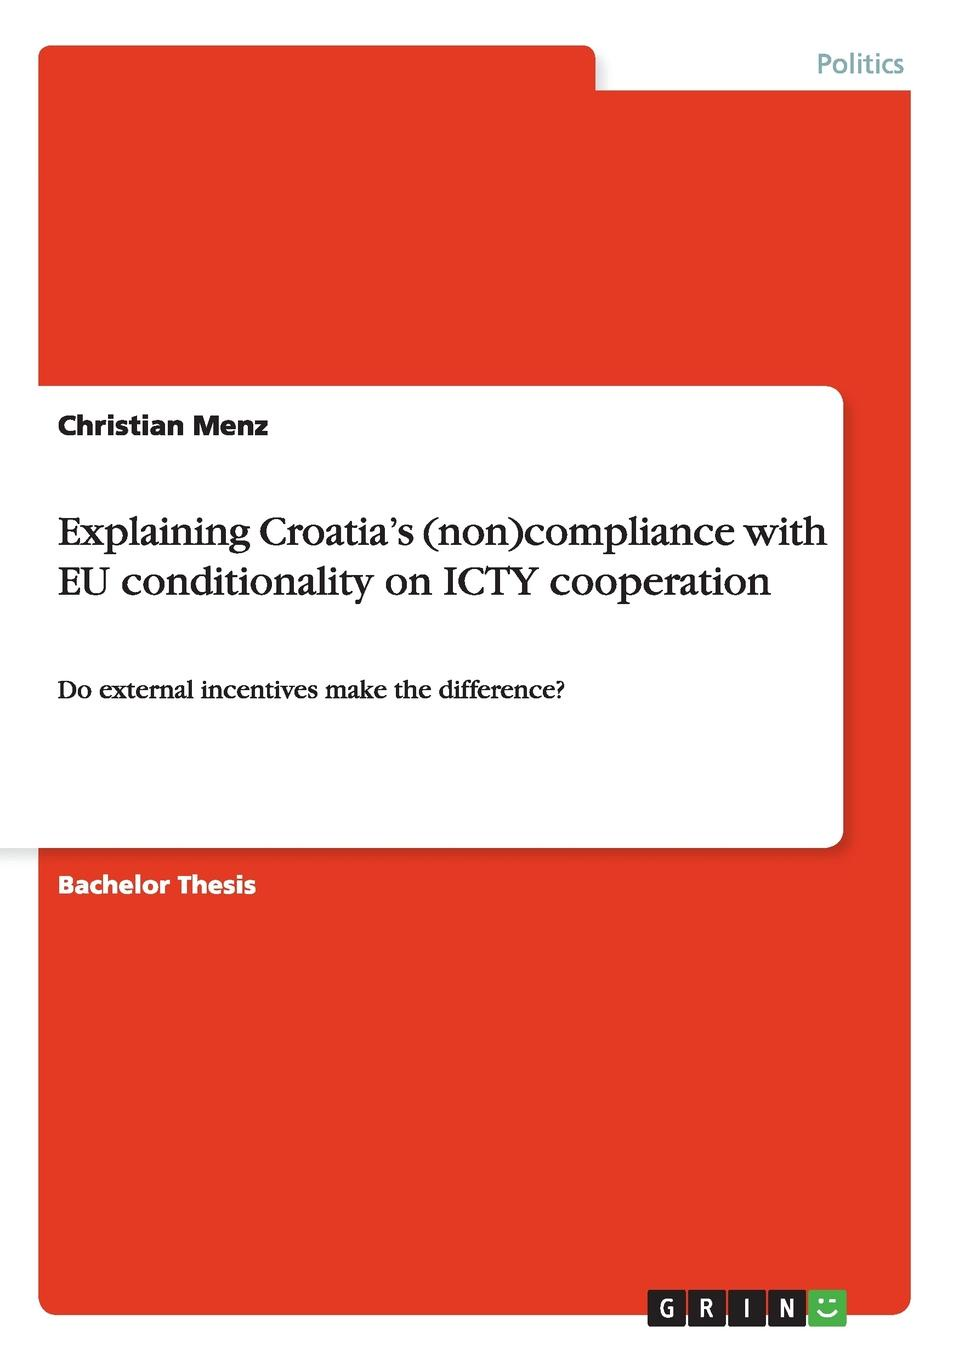 Christian Menz Explaining Croatia.s (non)compliance with EU conditionality on ICTY cooperation